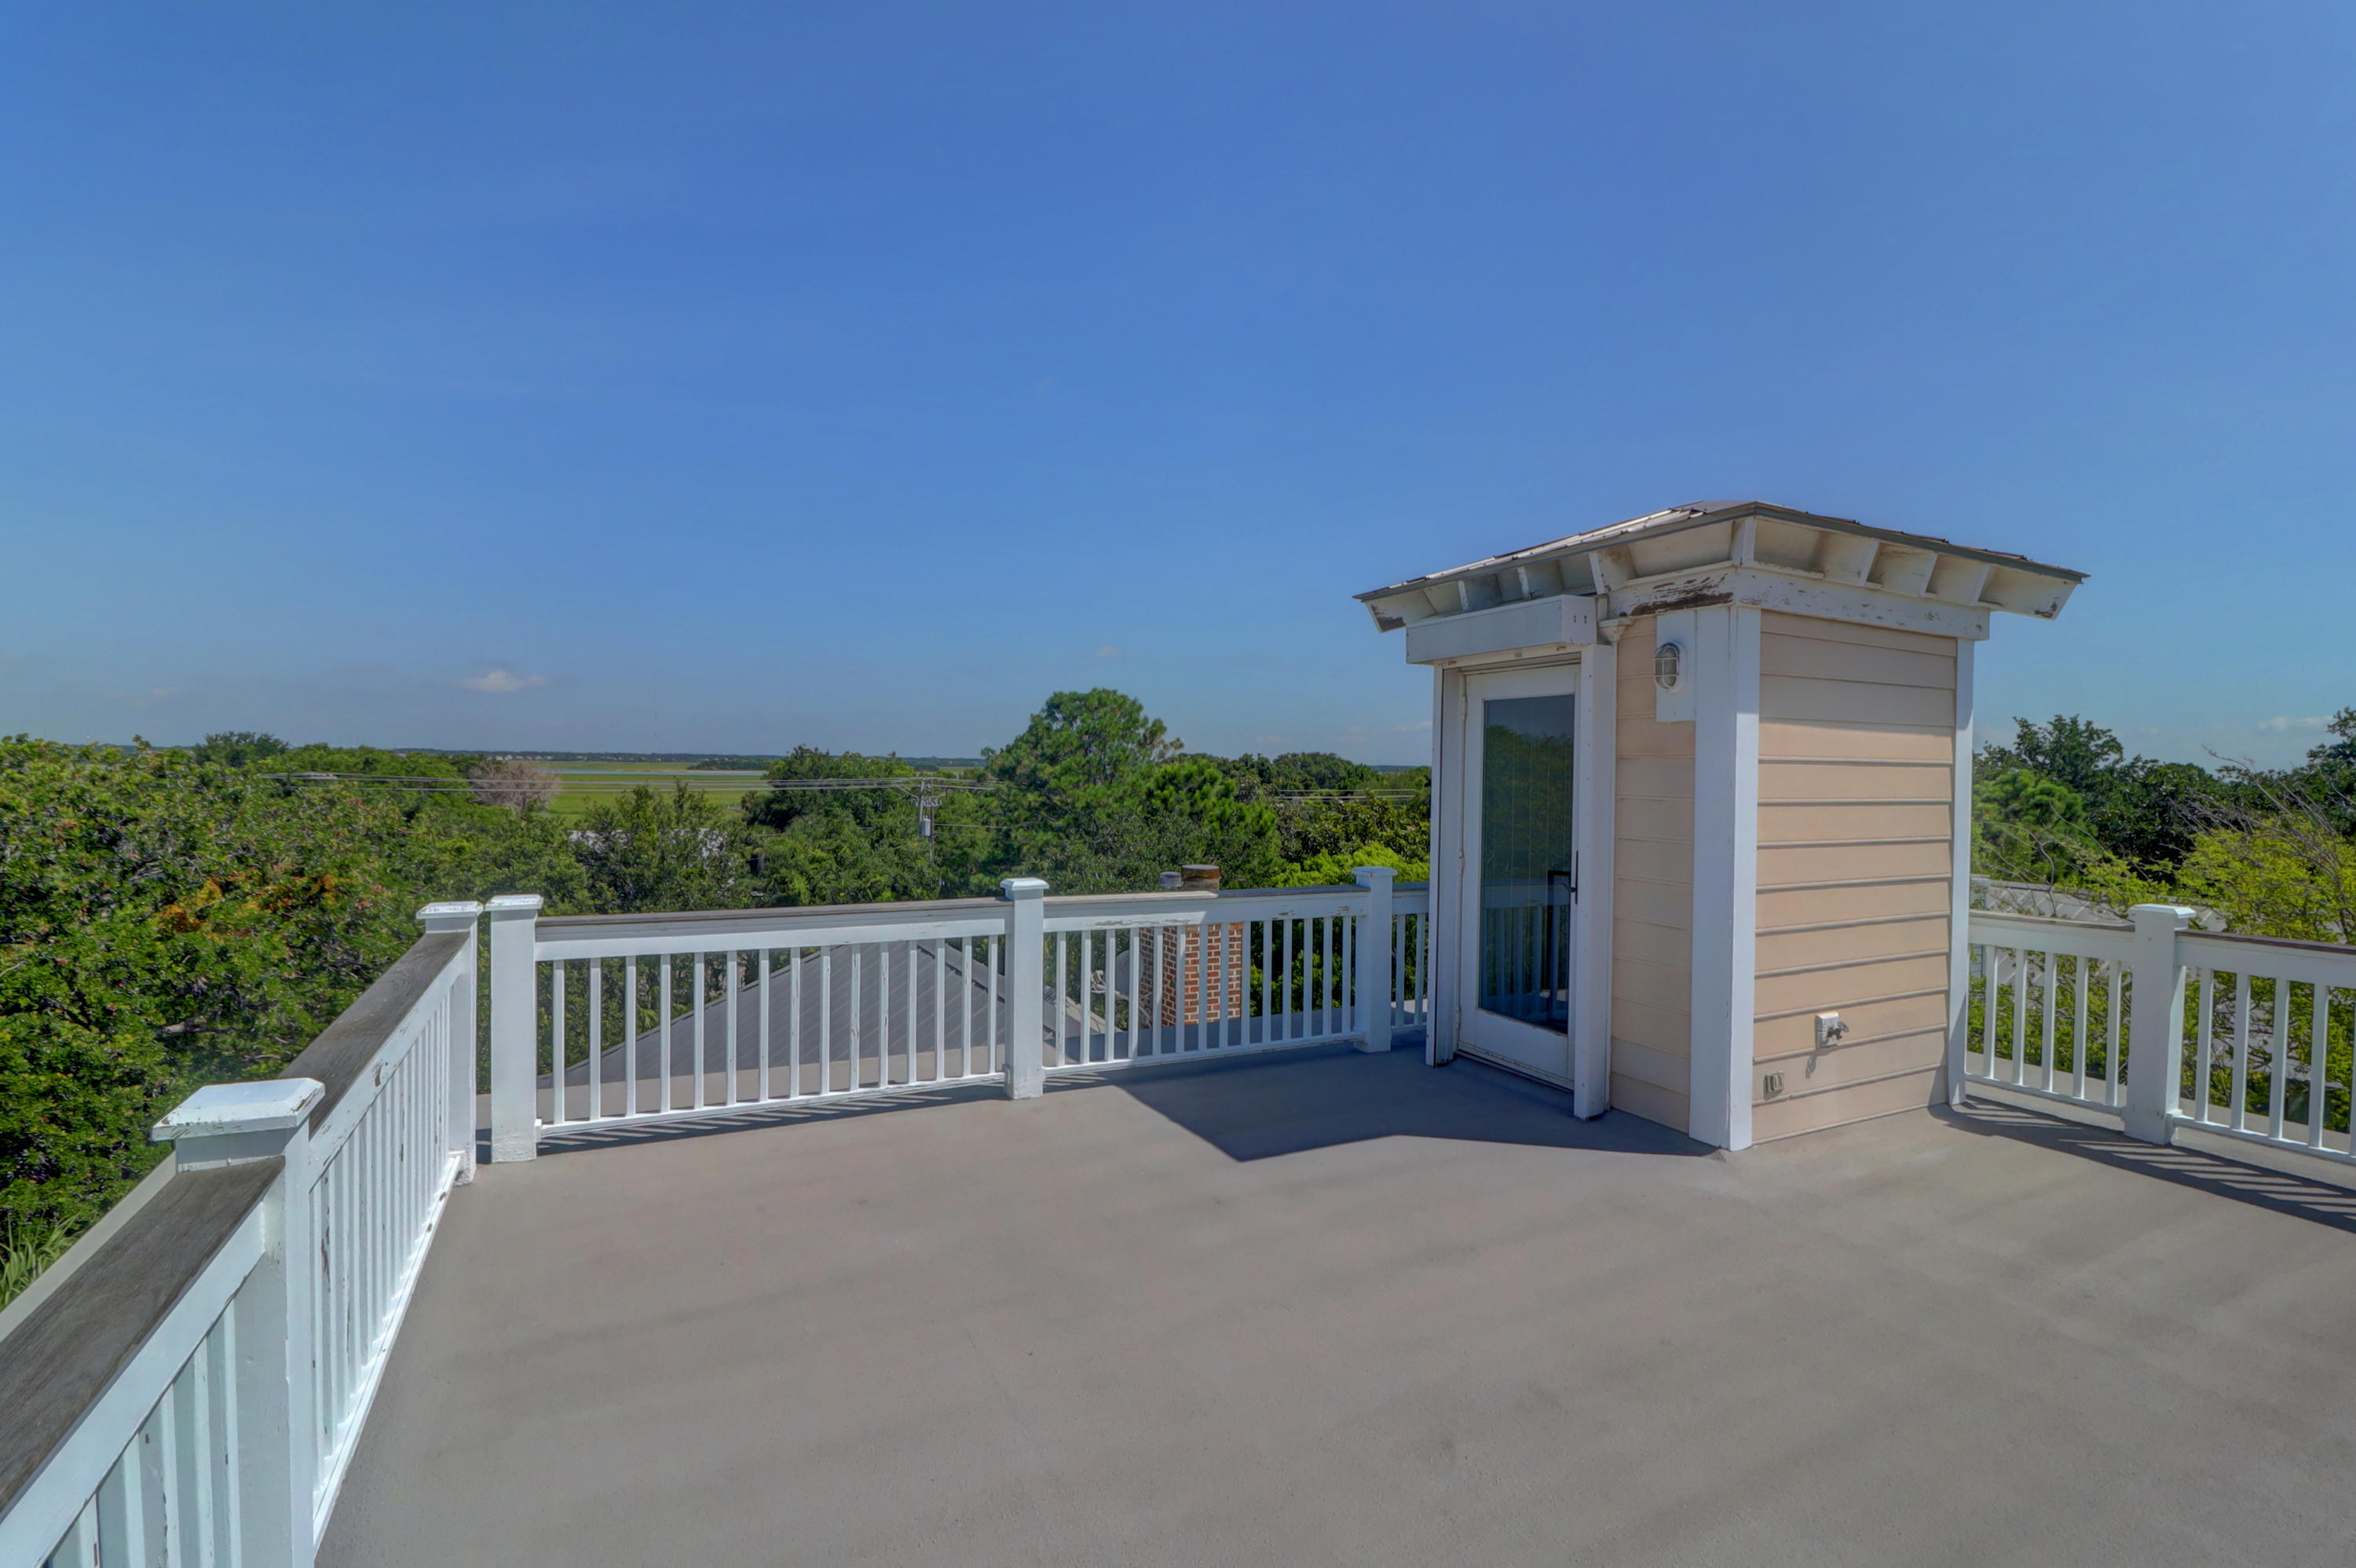 Sullivans Island Homes For Sale - 320 Station 28 1/2, Sullivans Island, SC - 3